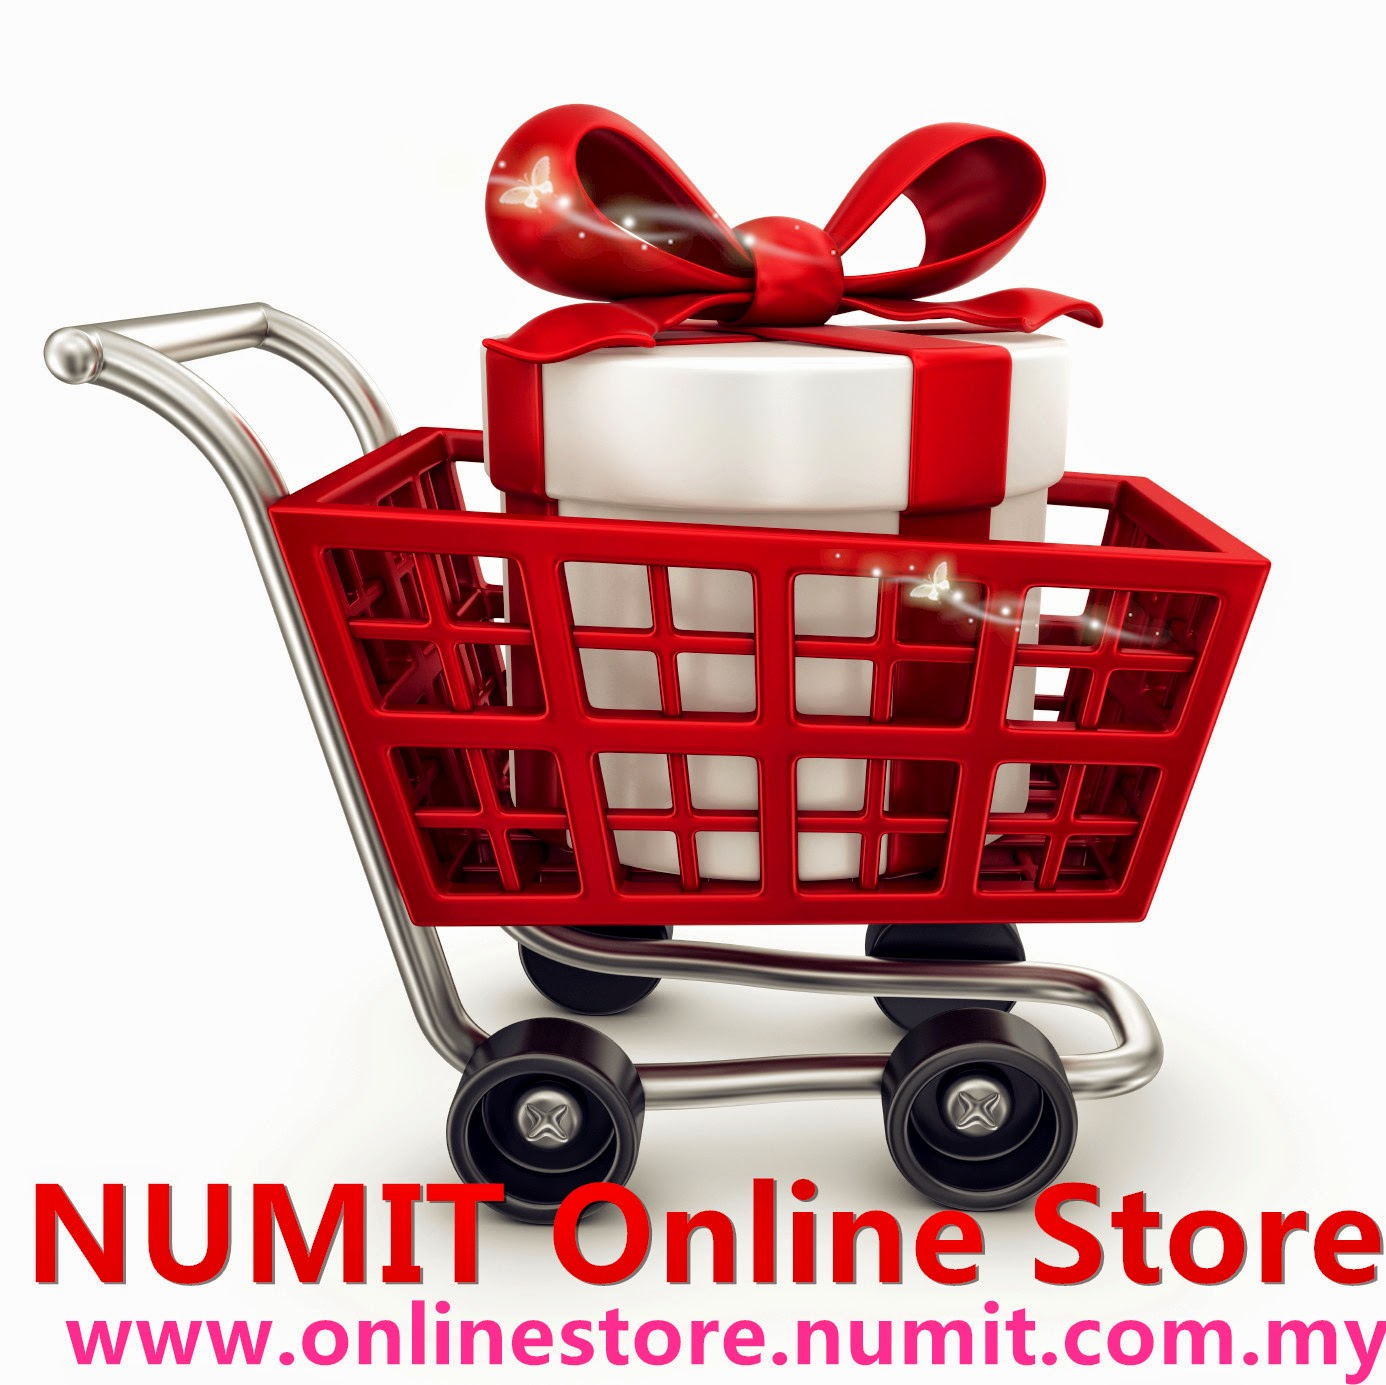 In Shop Online Store Numit Engineering Solution Provider In Computational Aided